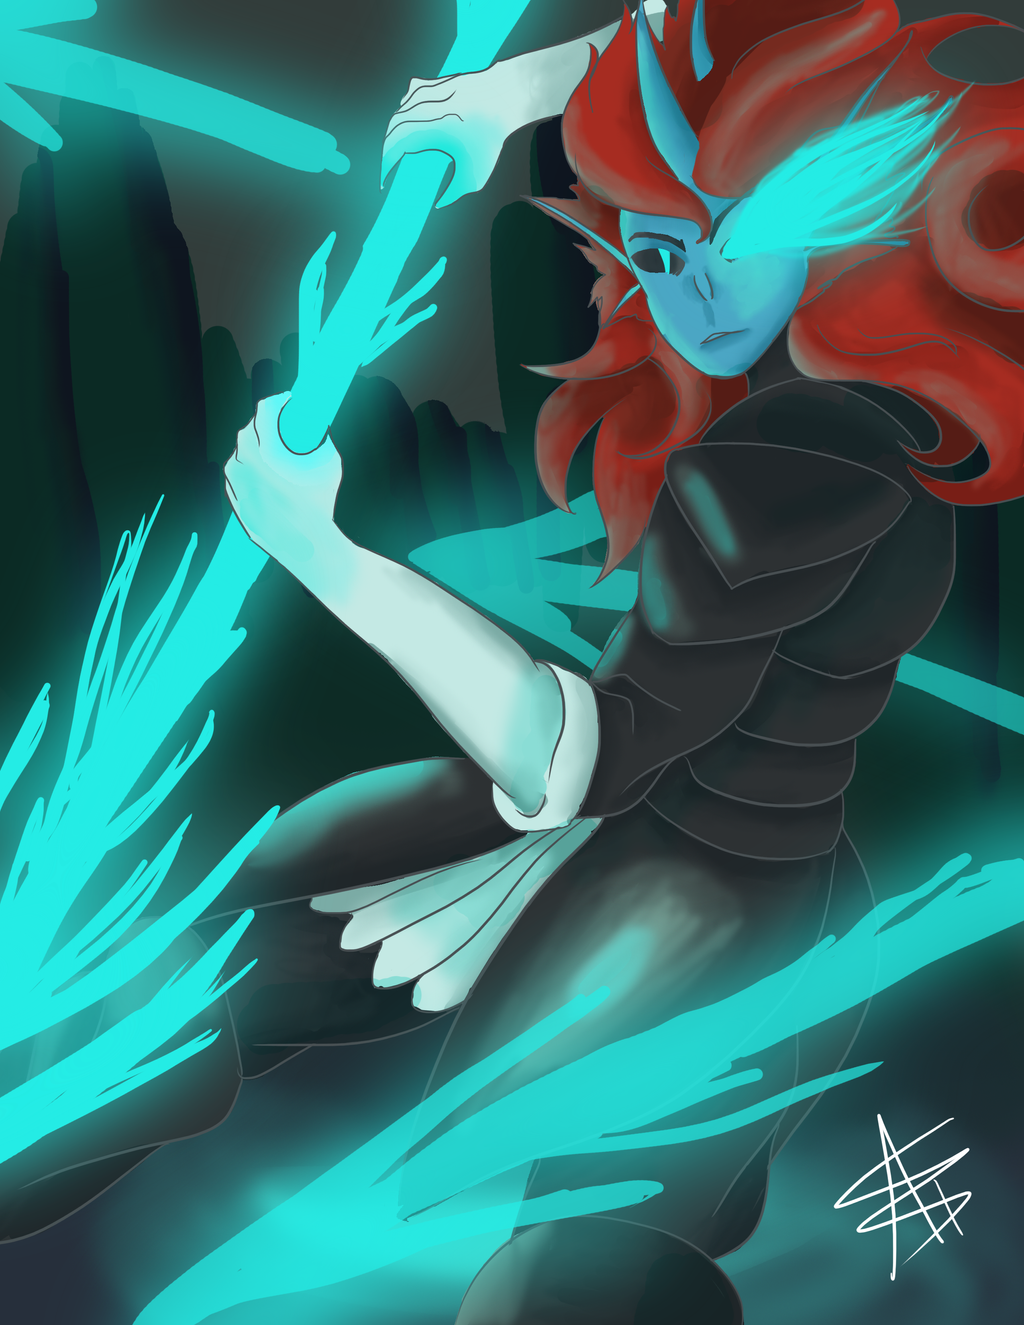 Undyne The Undying by LadyNidhogg